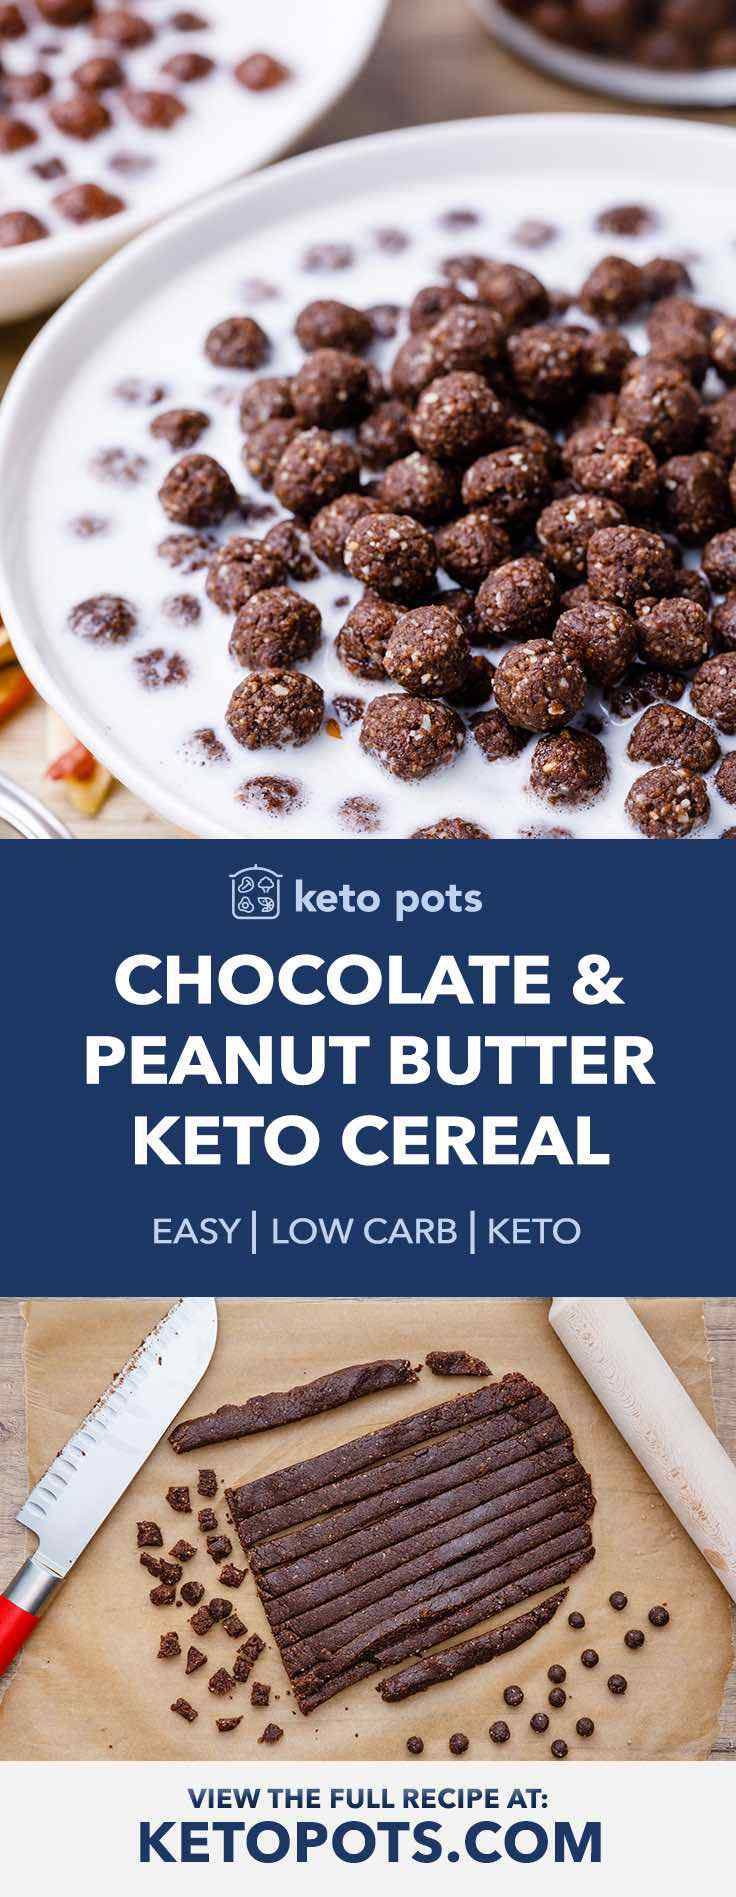 Chocolate and Peanut Butter Keto Cereal Puffs